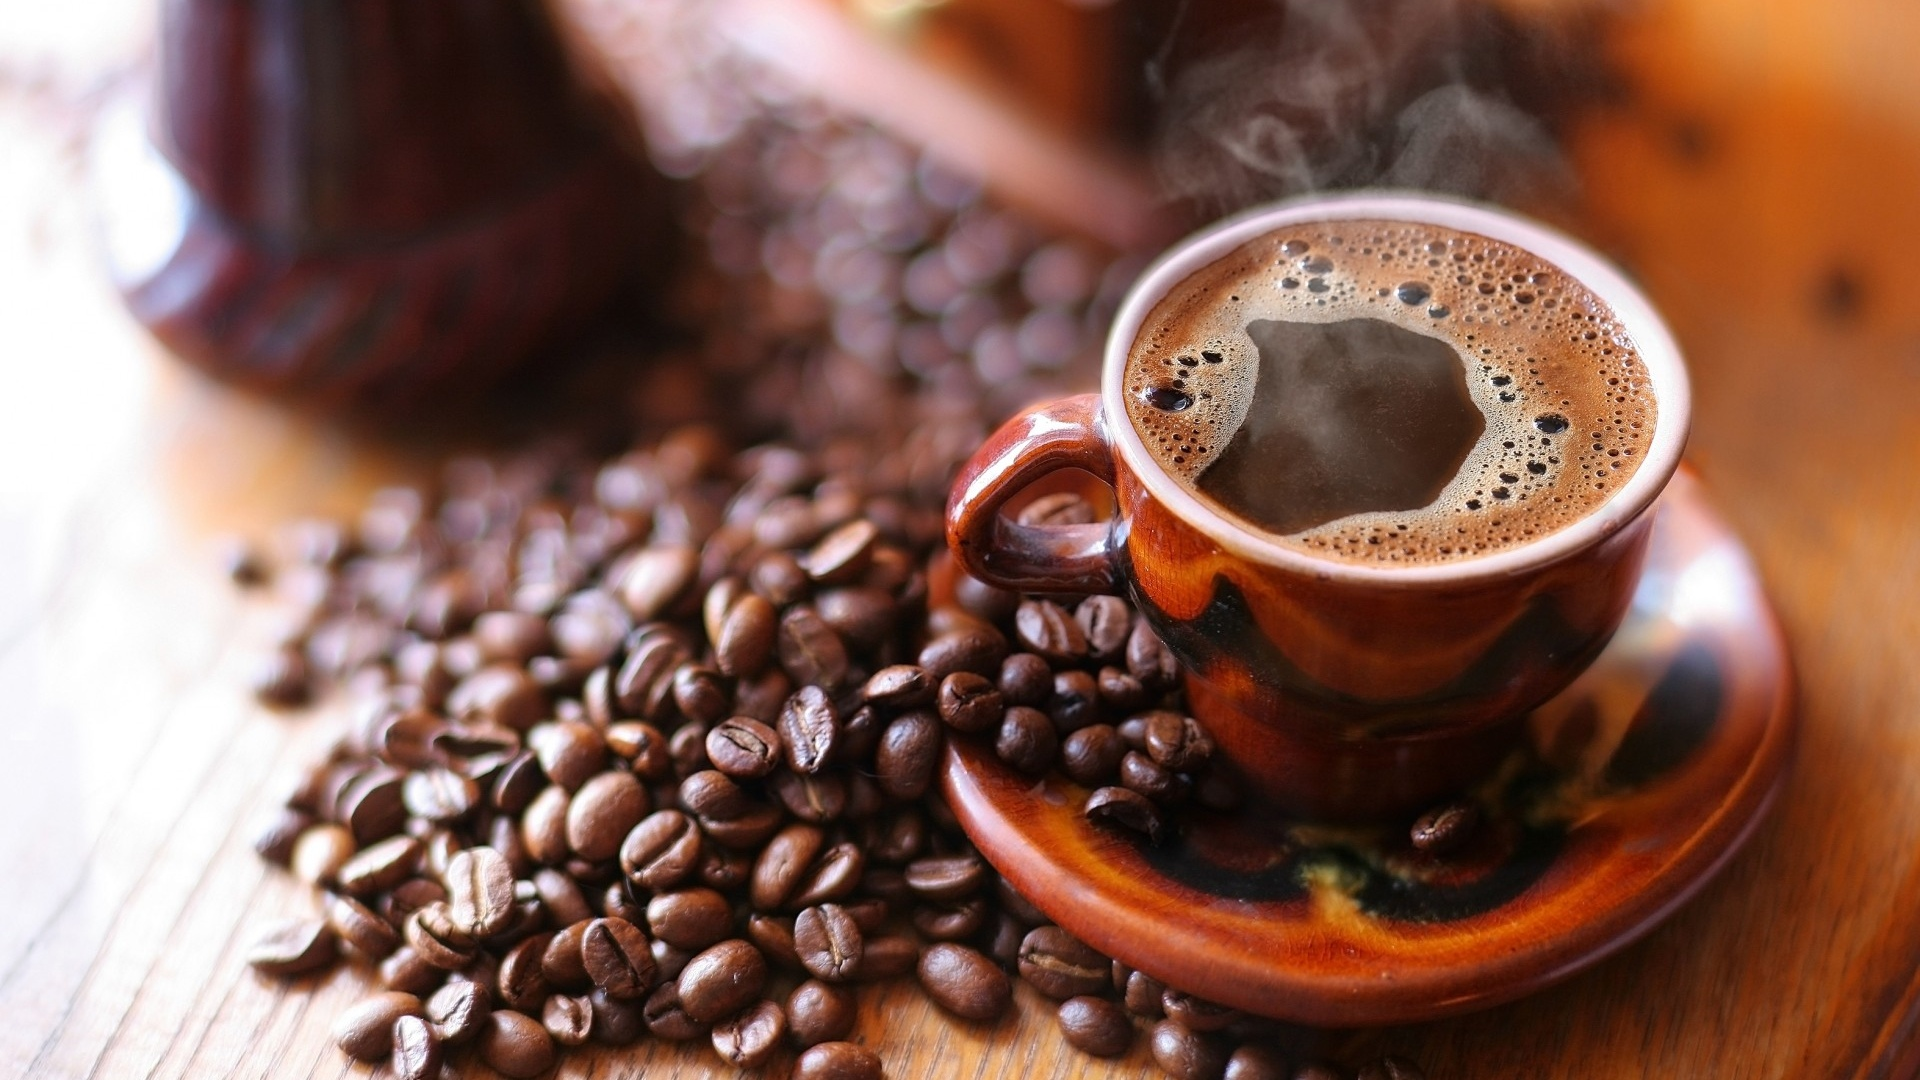 Coffee beans, cup, foam, steam 1920x1080 wallpaper